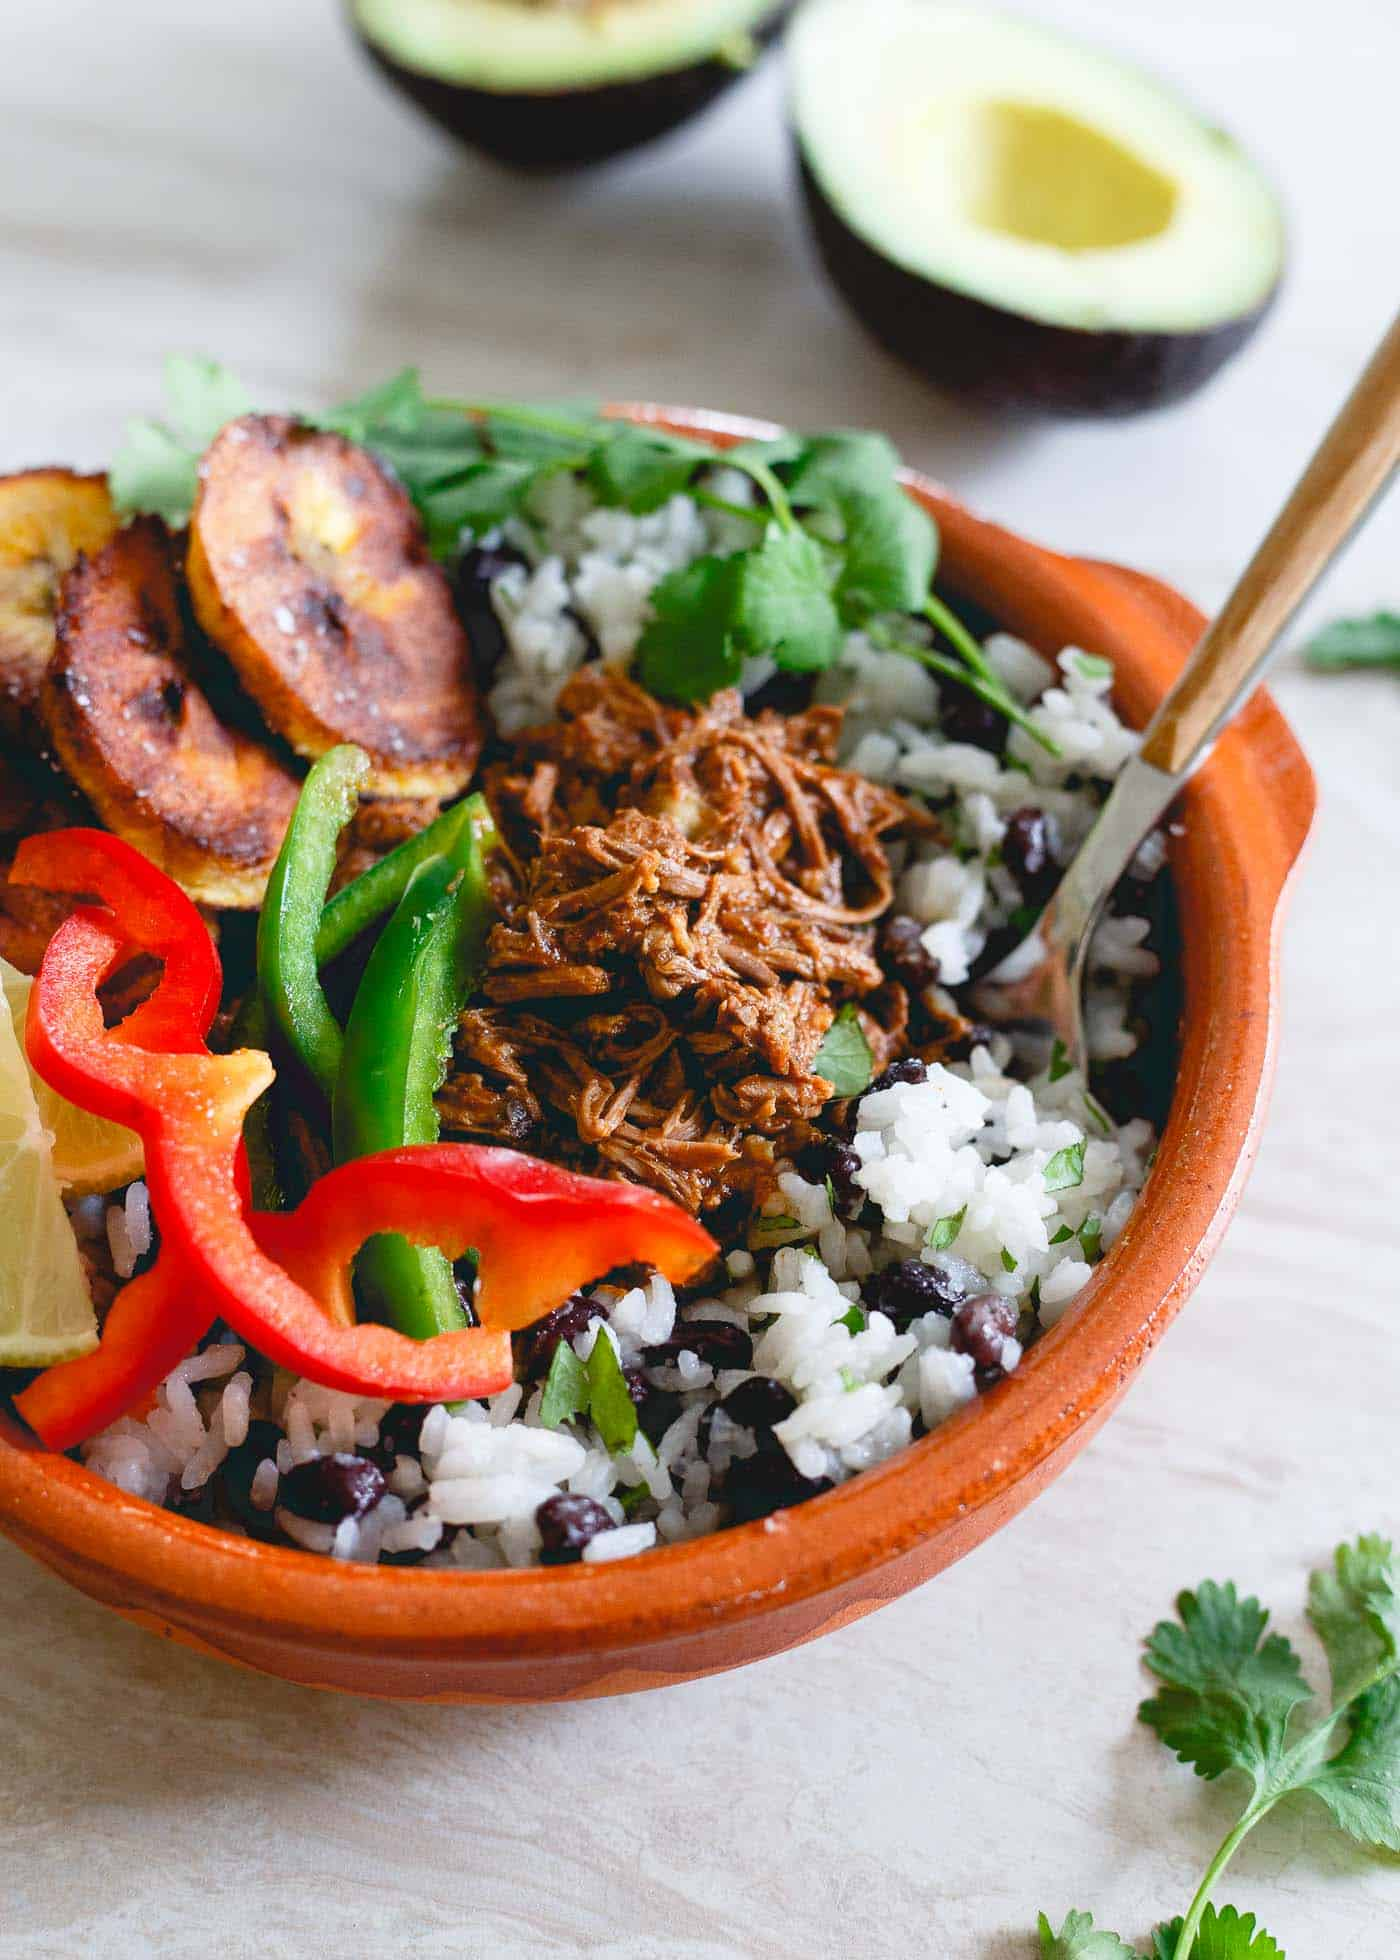 If you're looking for an easy meal prep idea, try these Mexican shredded beef bowls. Made in the slow cooker, they're easy to pack up for lunches and dinner all week long!